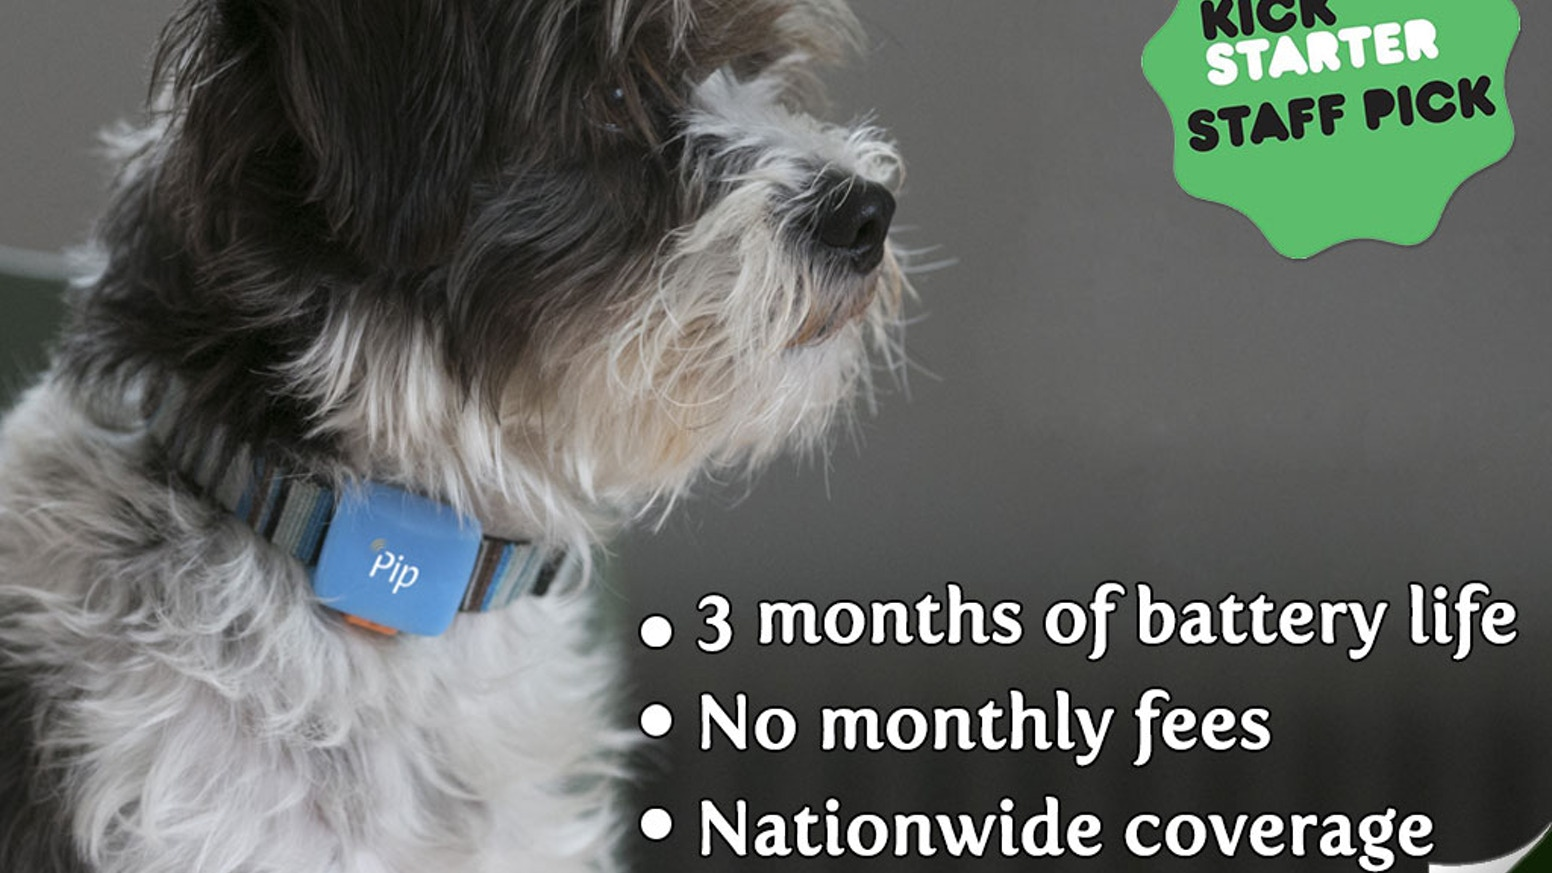 Pip is a small GPS and activity tracker for pets with great battery life, nationwide coverage and added connectivity.